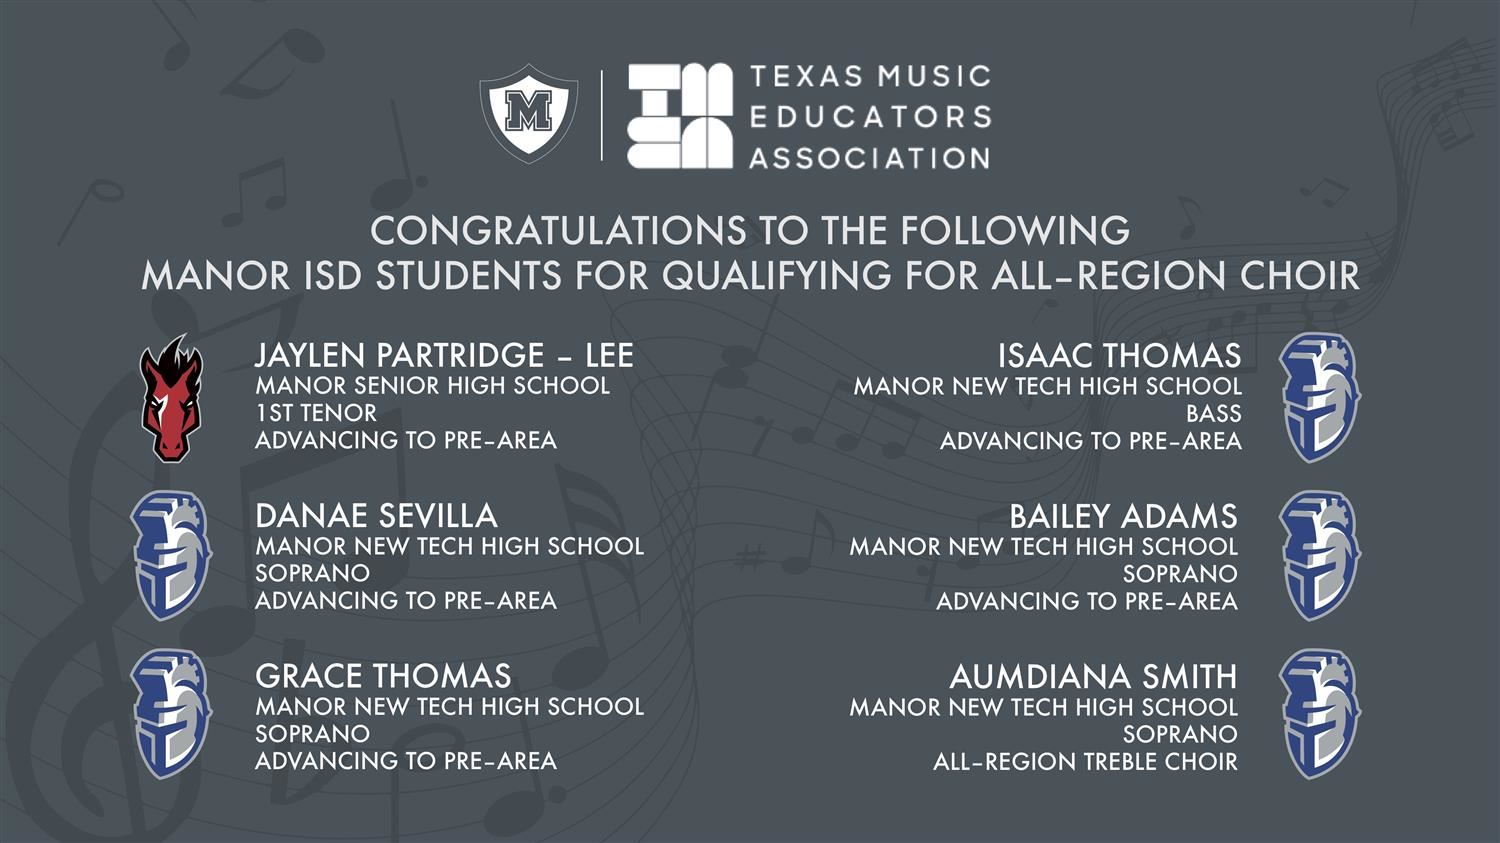 MISD High School Choral Students Advance to Pre-Area